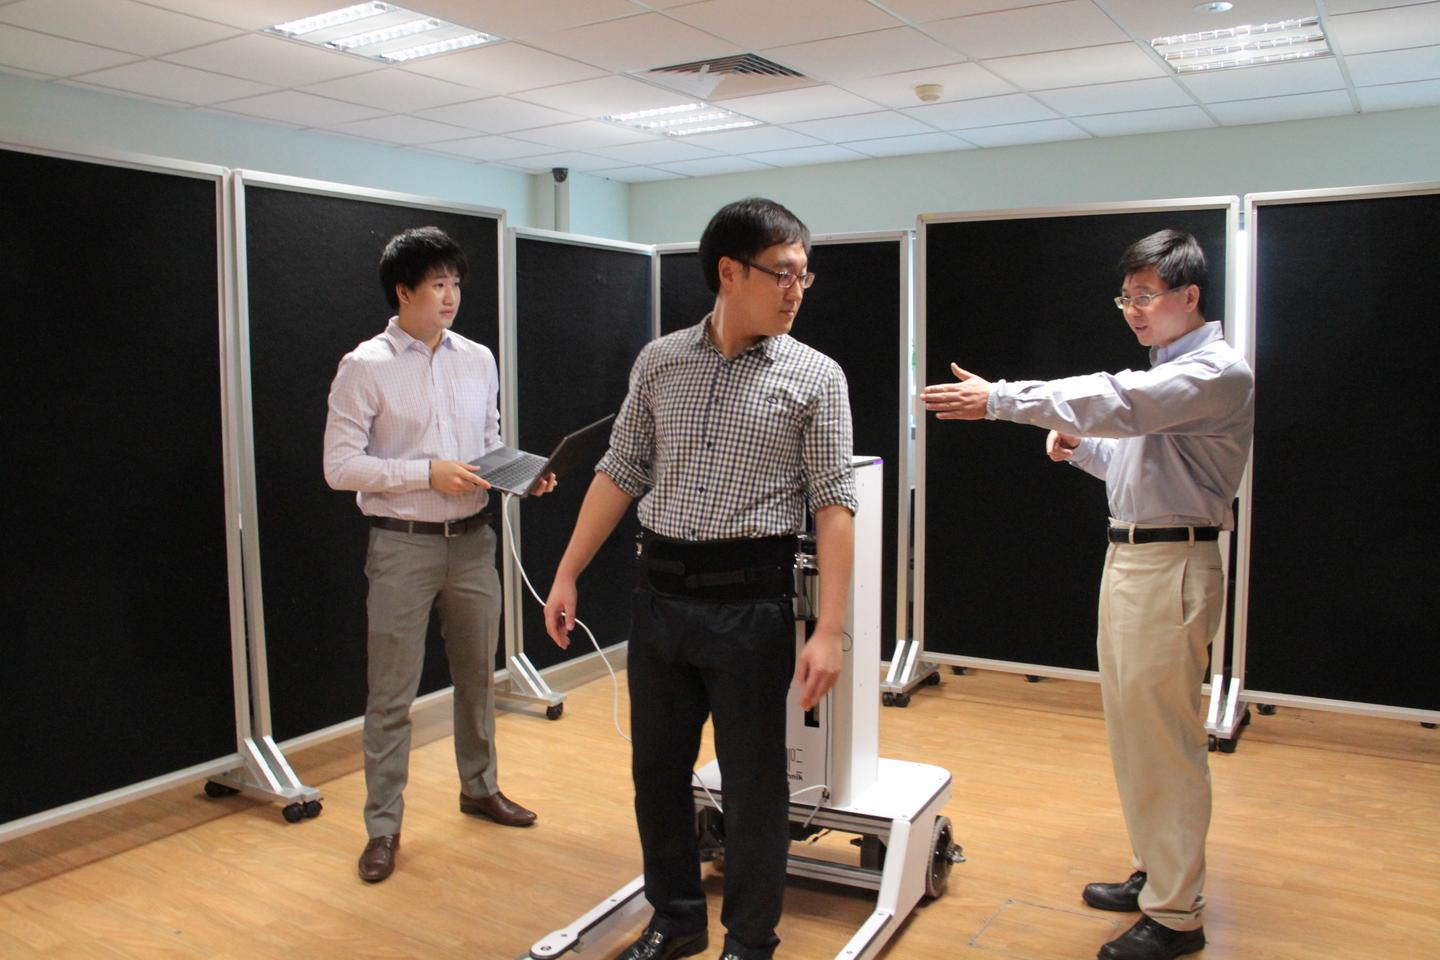 The robotic walker moves with the user, instead of keeping them confined to a treadmill